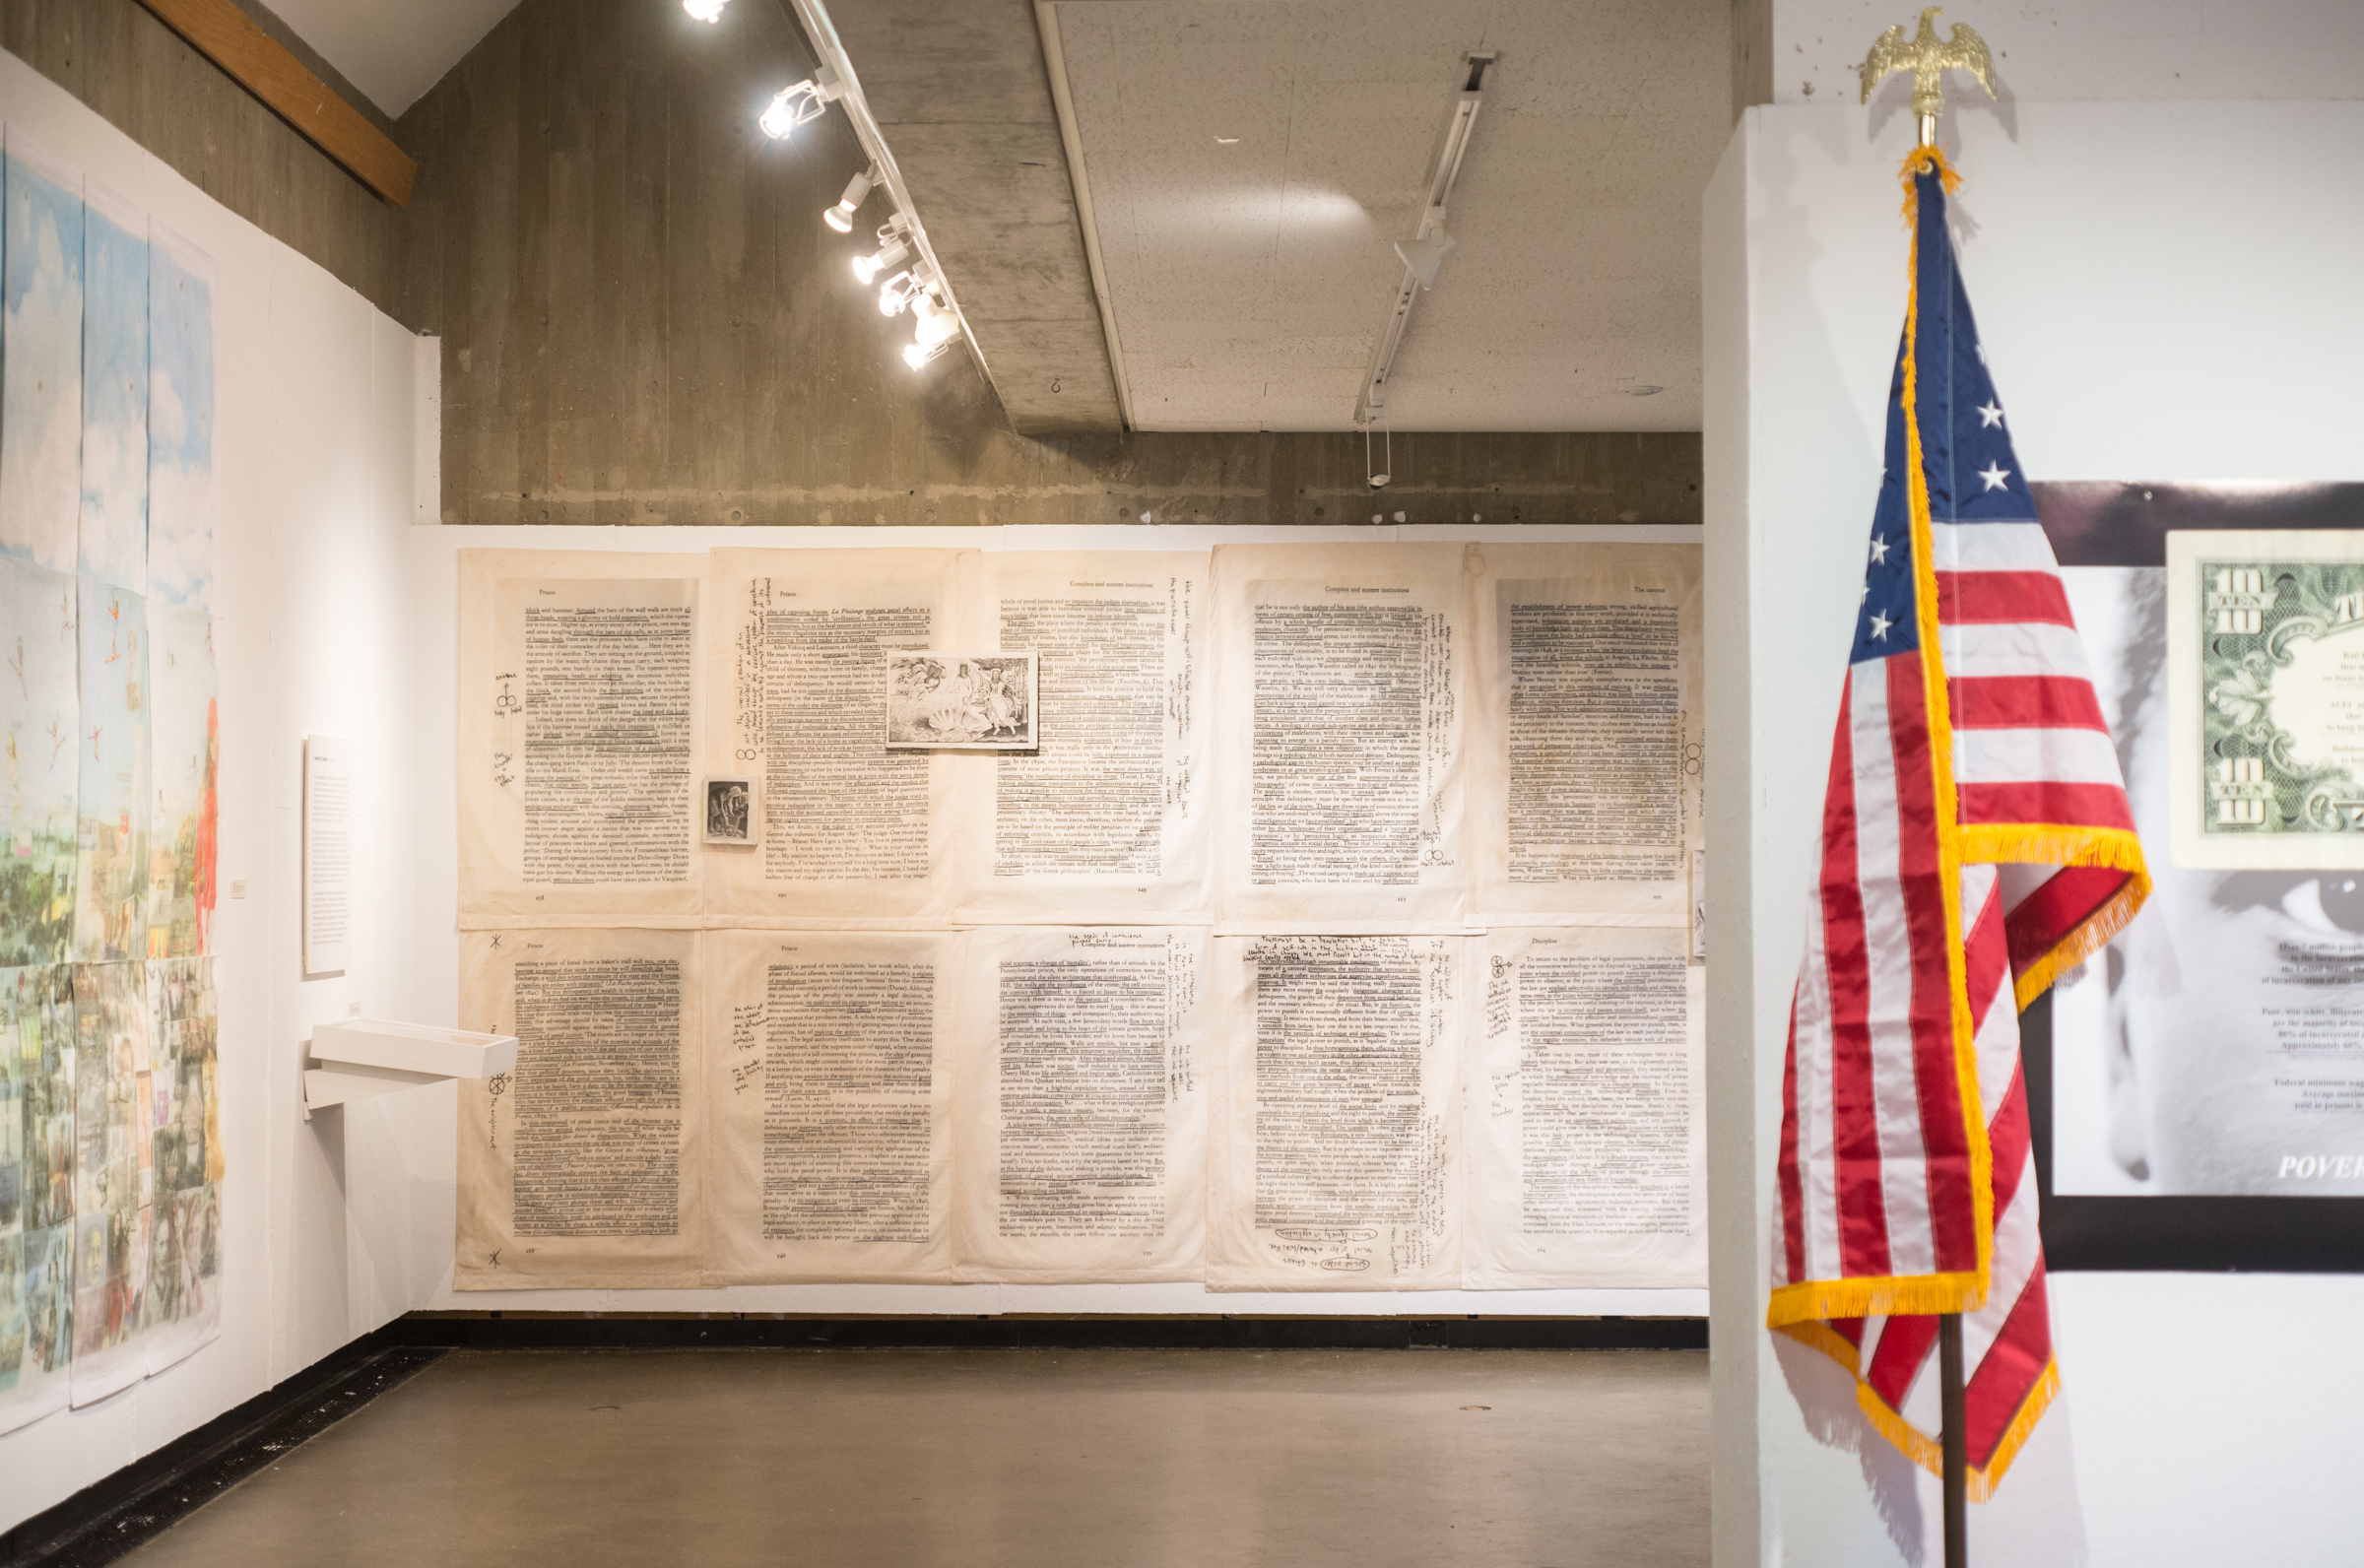 photograph of two gallery walls, one with blown up fabric prints of annotated book pages, and an american flag against another gallery wall